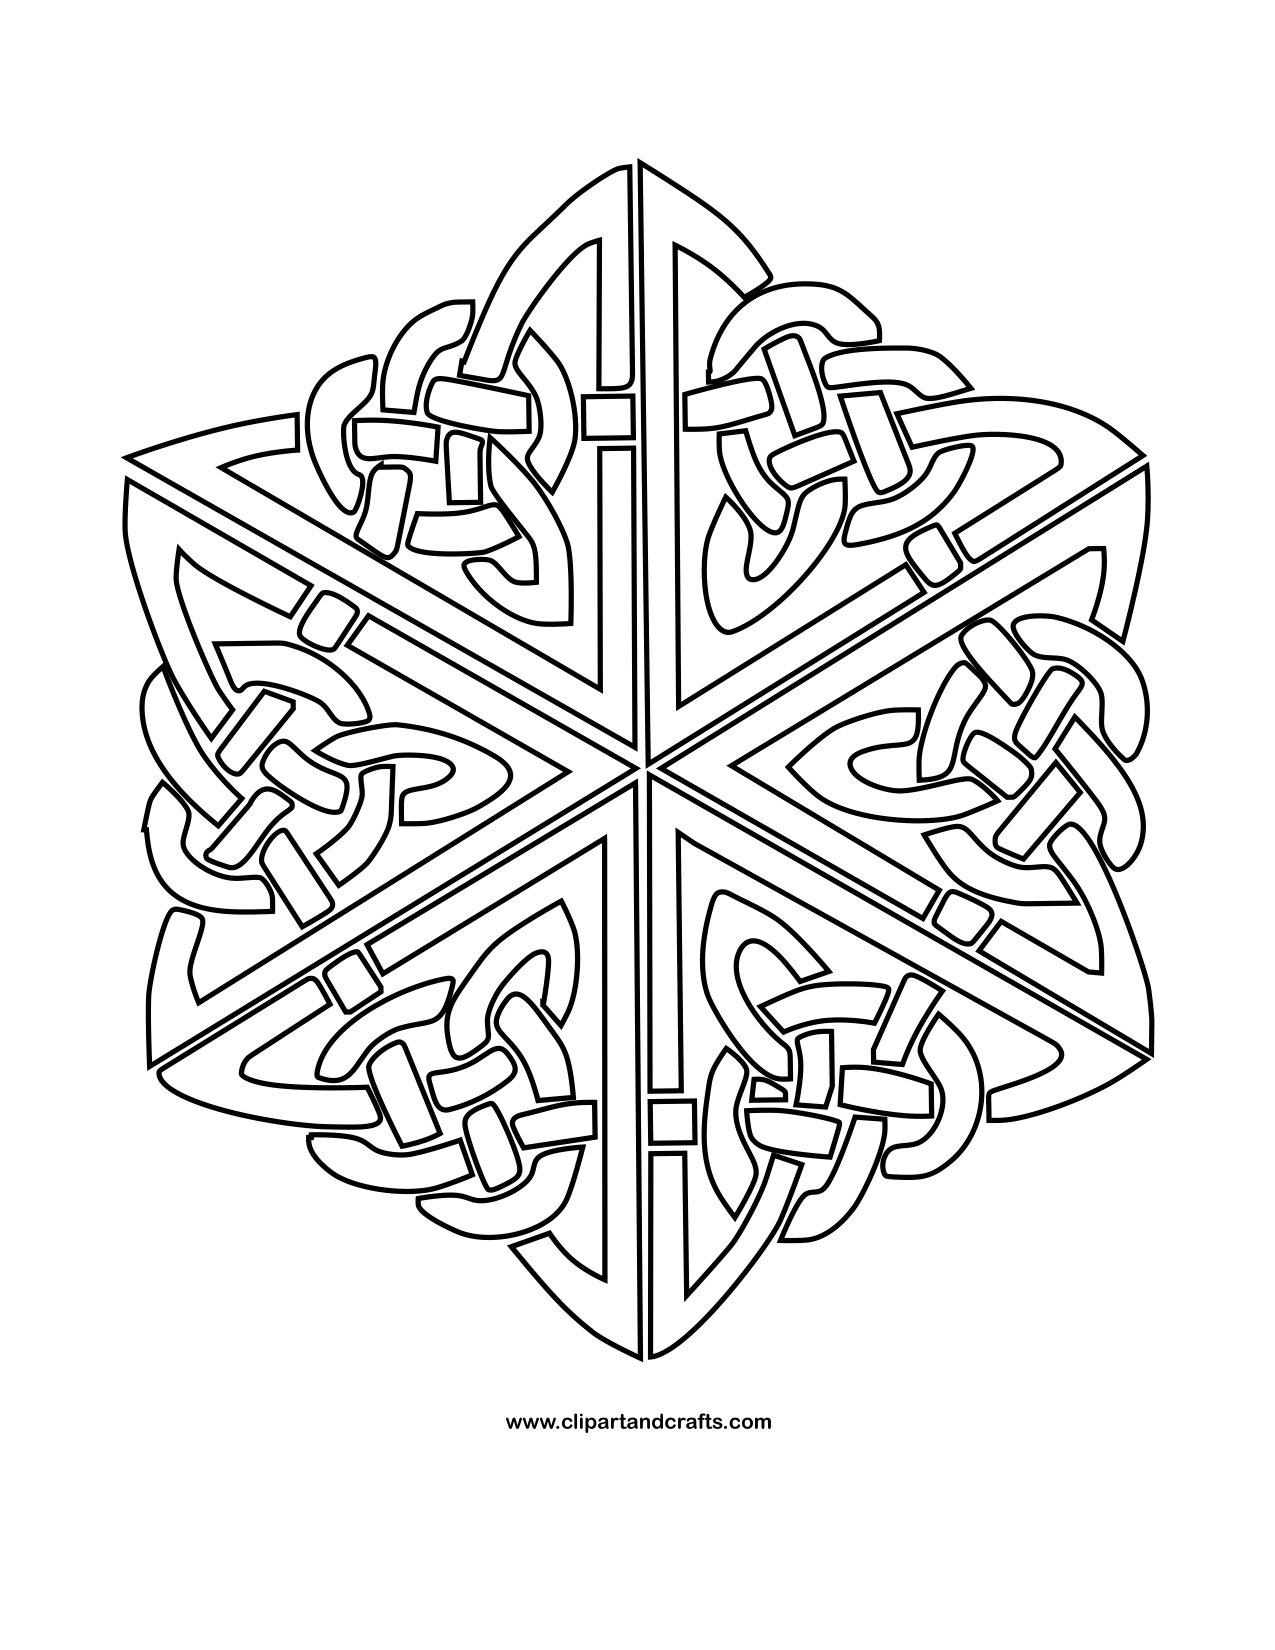 Mandala Monday - More Free Celtic Mandalas to Color